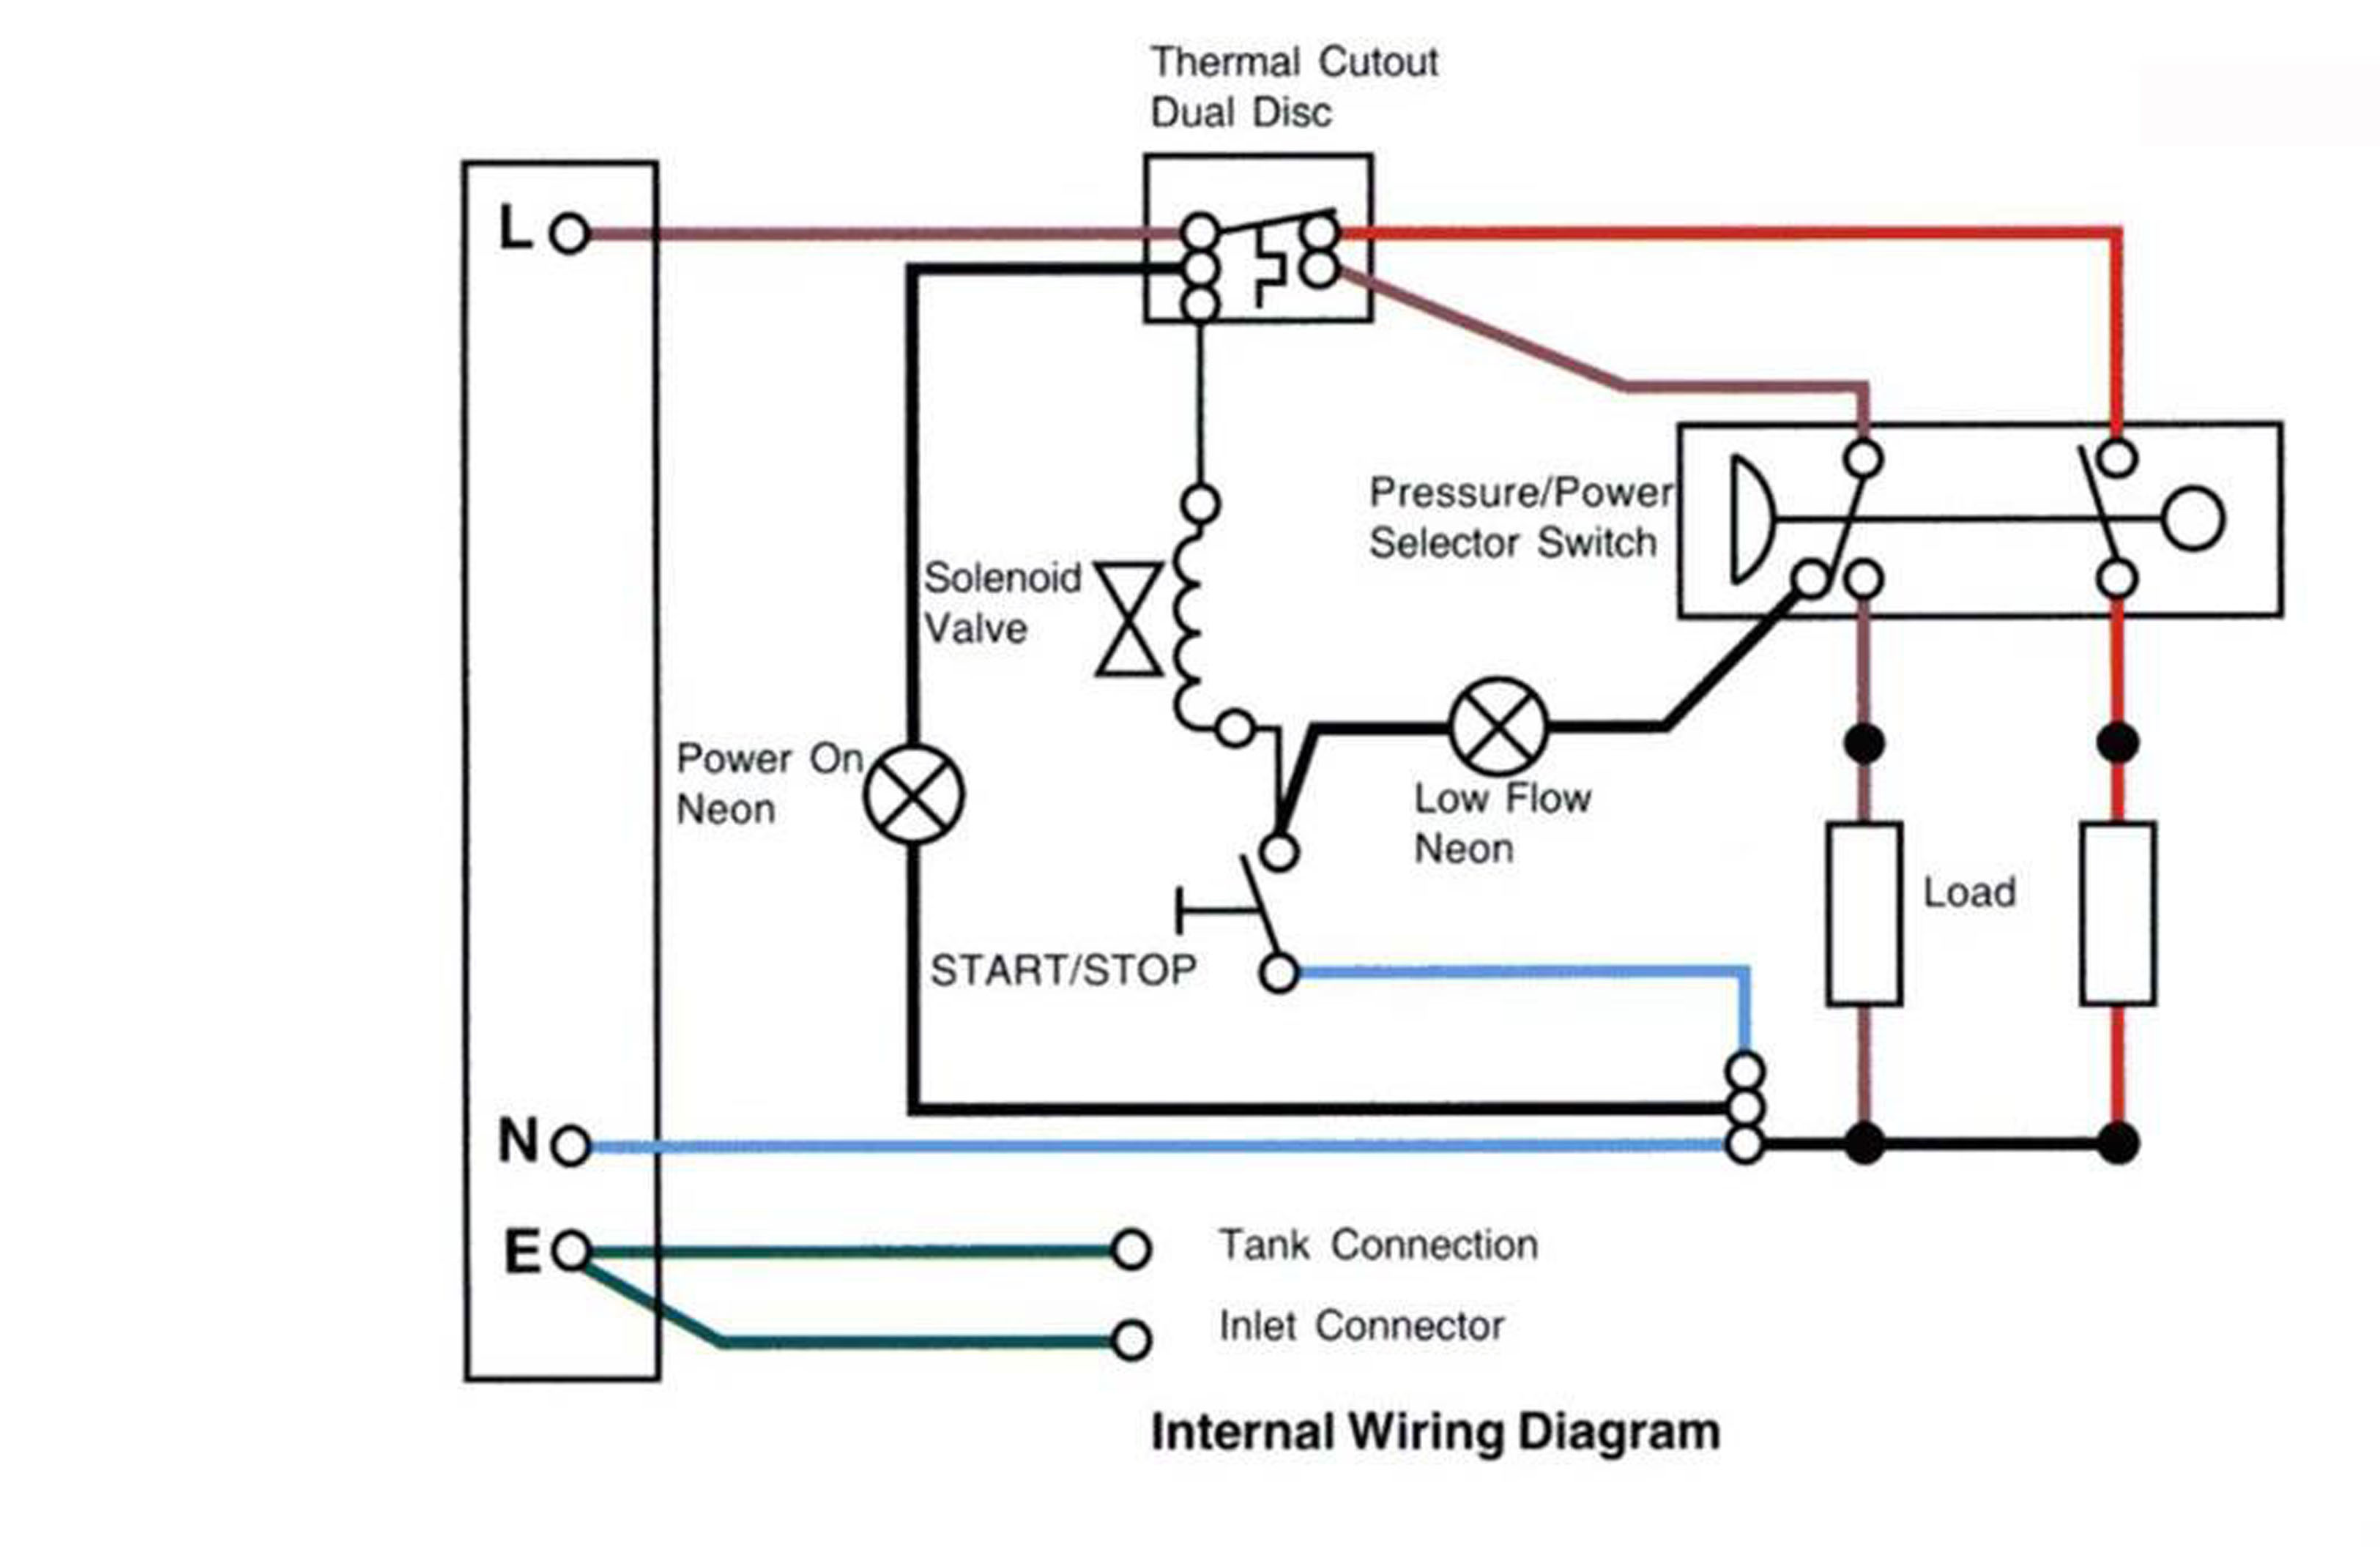 [DVZP_7254]   XY_7860] Wiring Diagrams Bathroom Wiring Diagram | Wiring Diagram For A Bathroom Extractor Fan |  | Hicag Umng Mohammedshrine Librar Wiring 101